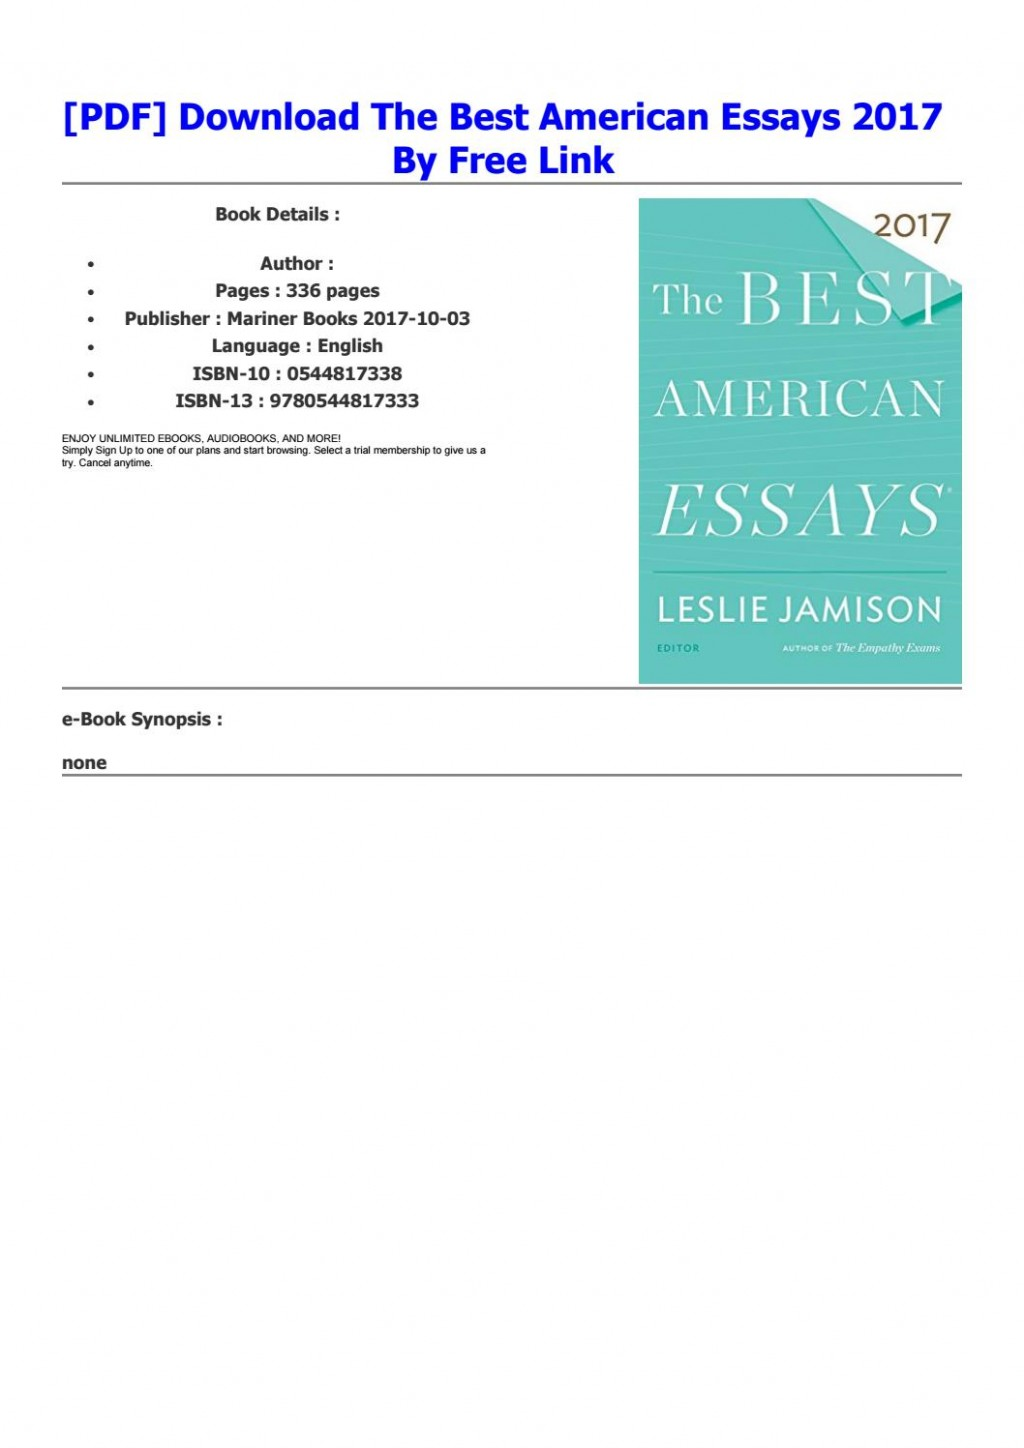 006 Page 1 Essay Example Best American Essays Astounding 2017 Submissions Pdf Free Download Large